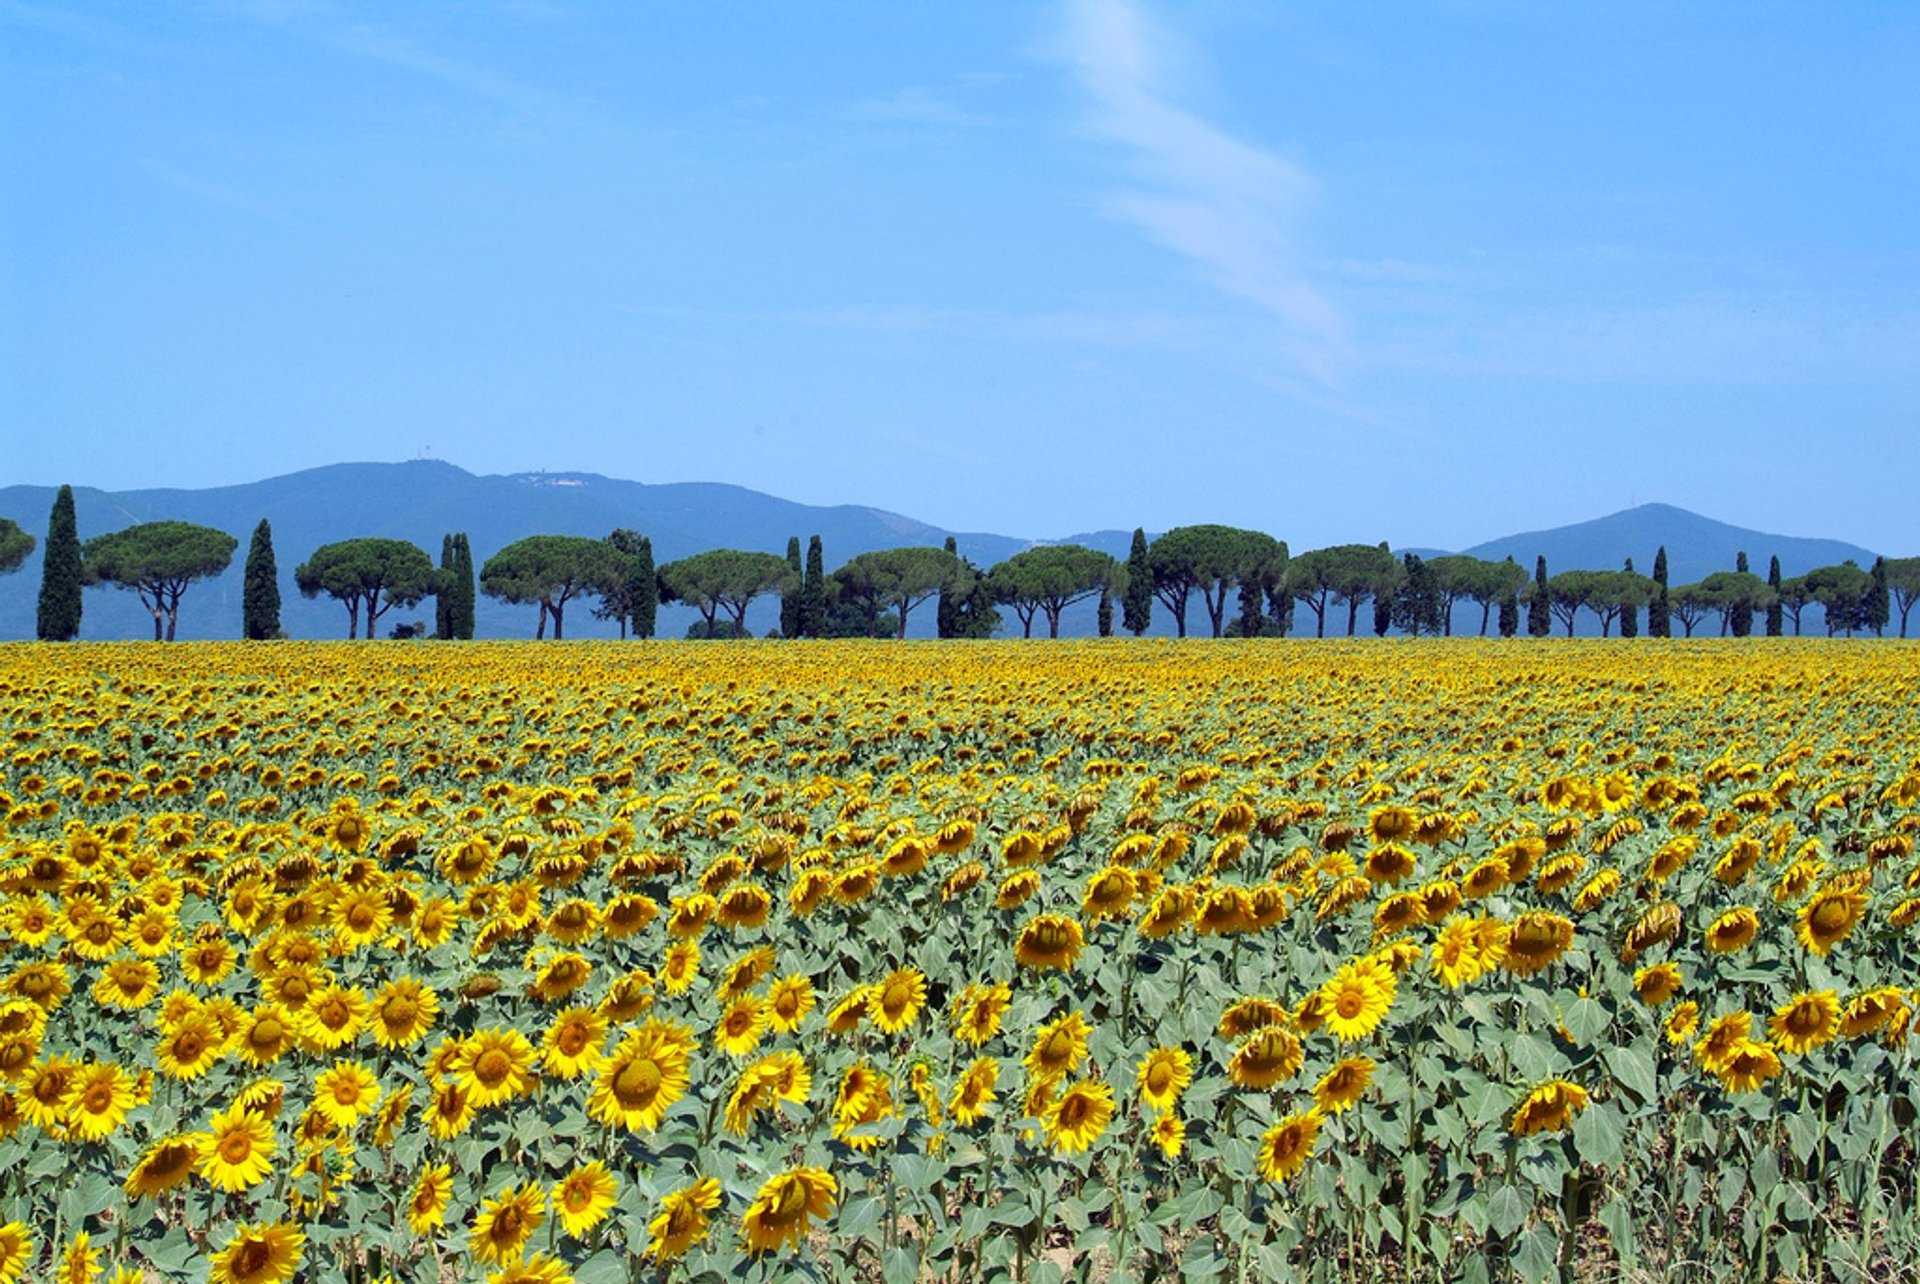 Sunflower Fields in Tuscany 2019 - Best Time